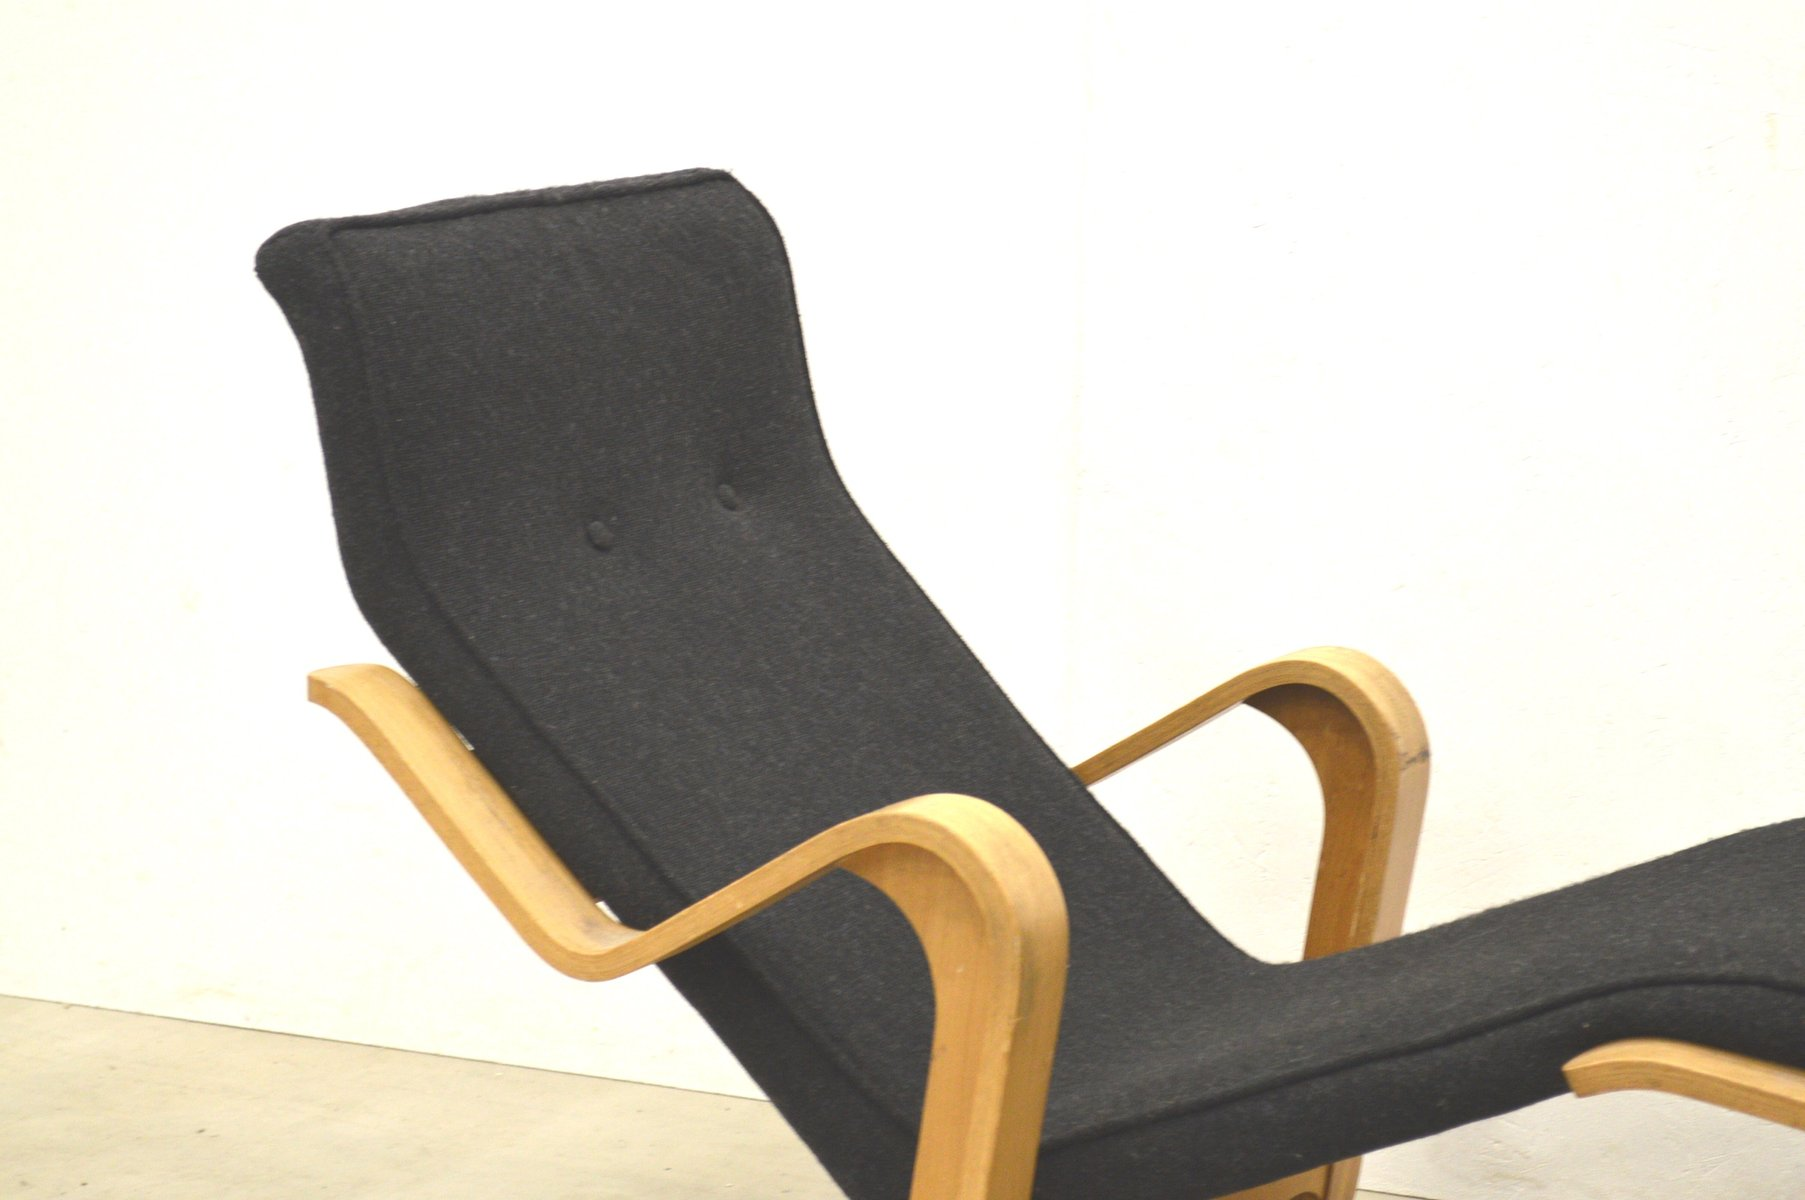 Birch chaise longue by marcel breuer for isokon 1950s for for Chaise longues for sale uk